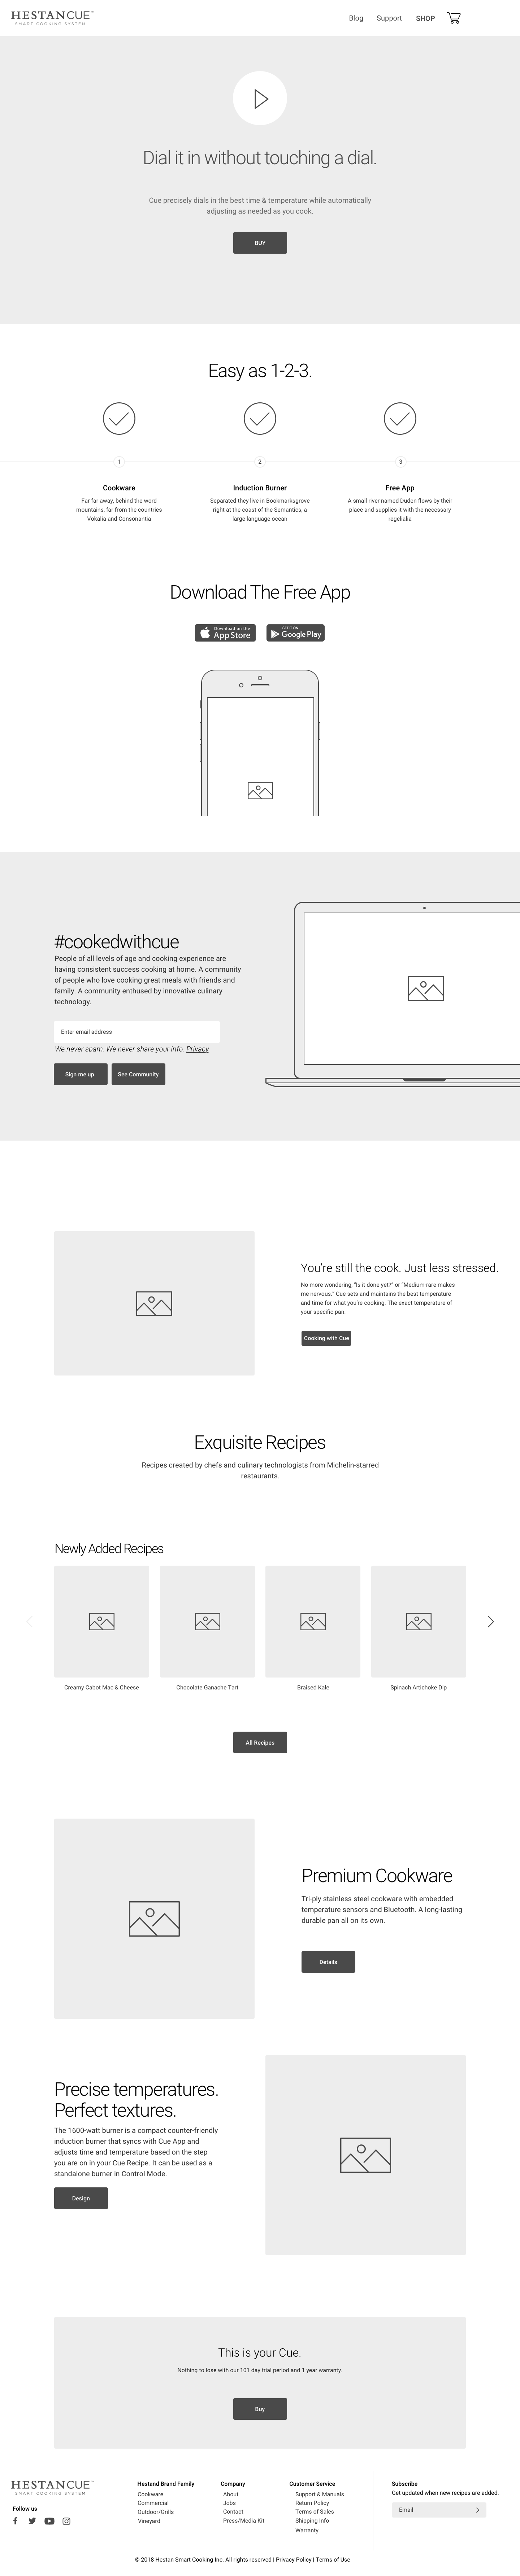 Home Page Wireframe (Select to see full-screen)